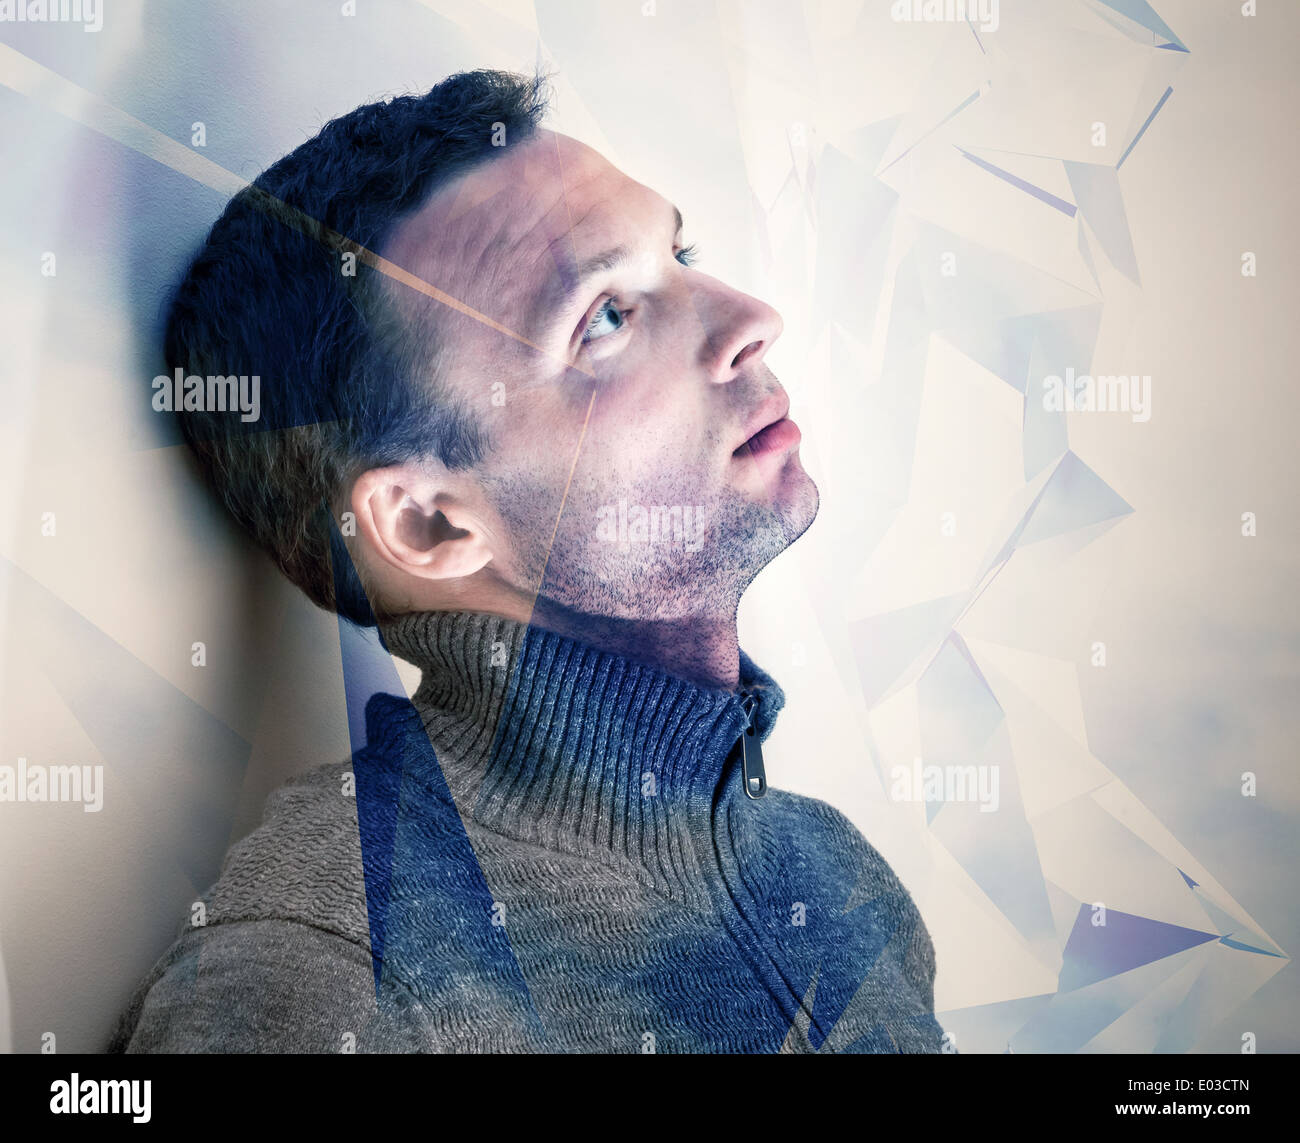 Young dreamy man conceptual portrait with technology pattern - Stock Image